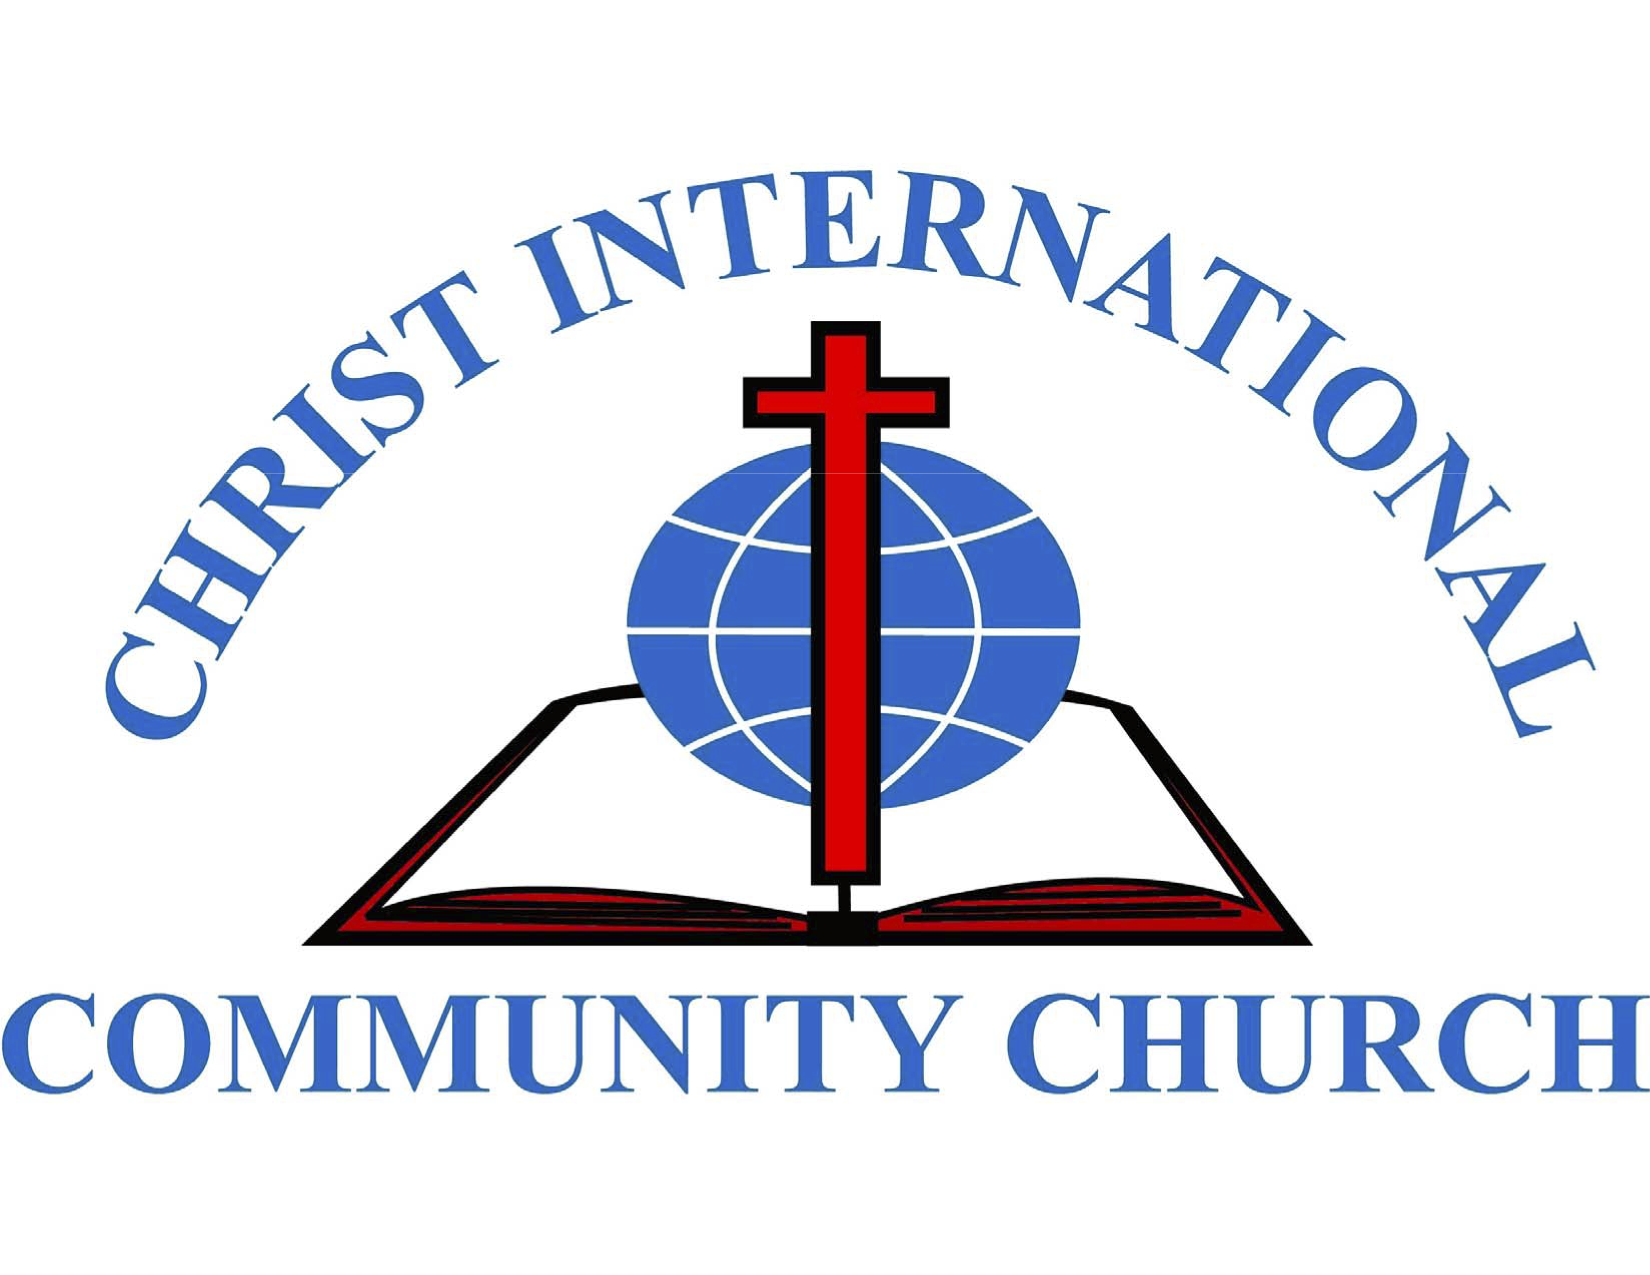 Christ International Community Church